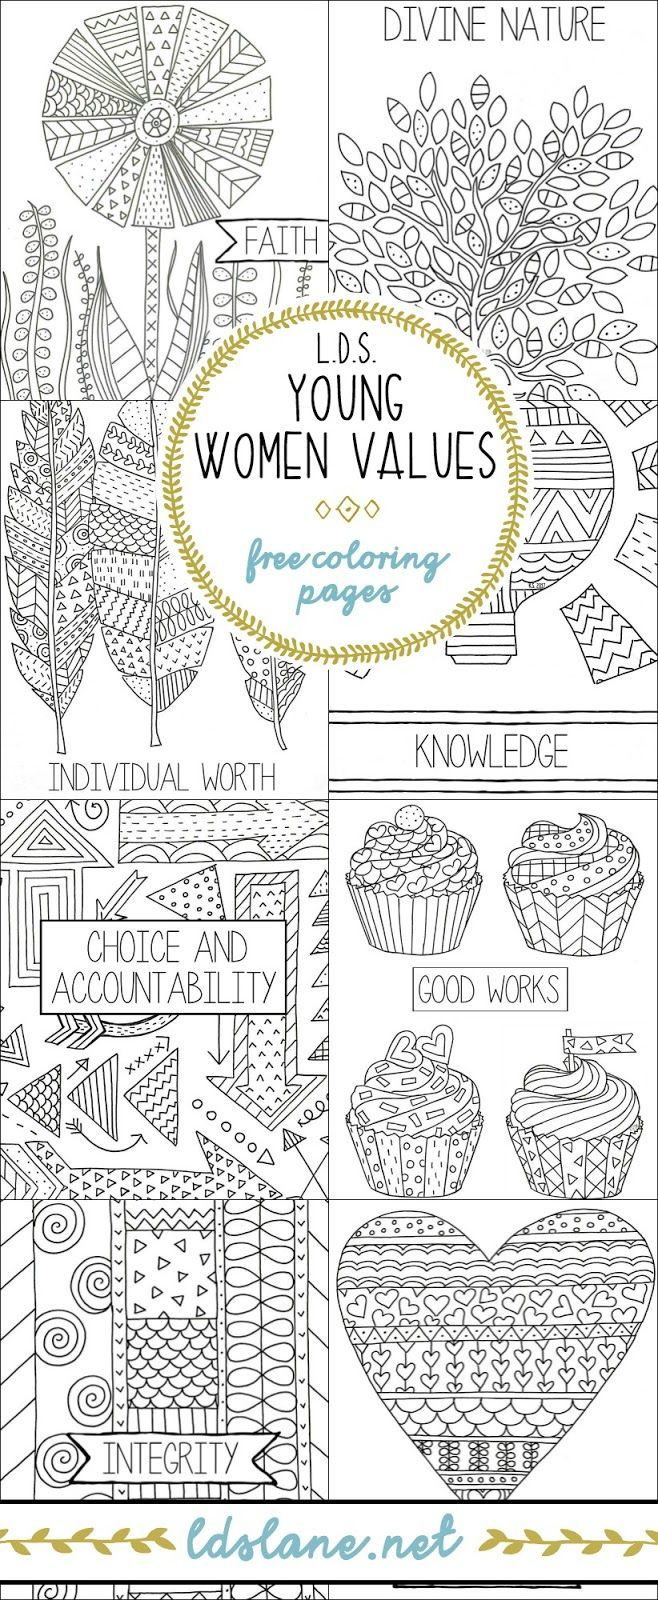 LDS Young Women Values Coloring Pages - ldslane.net | Young women ...